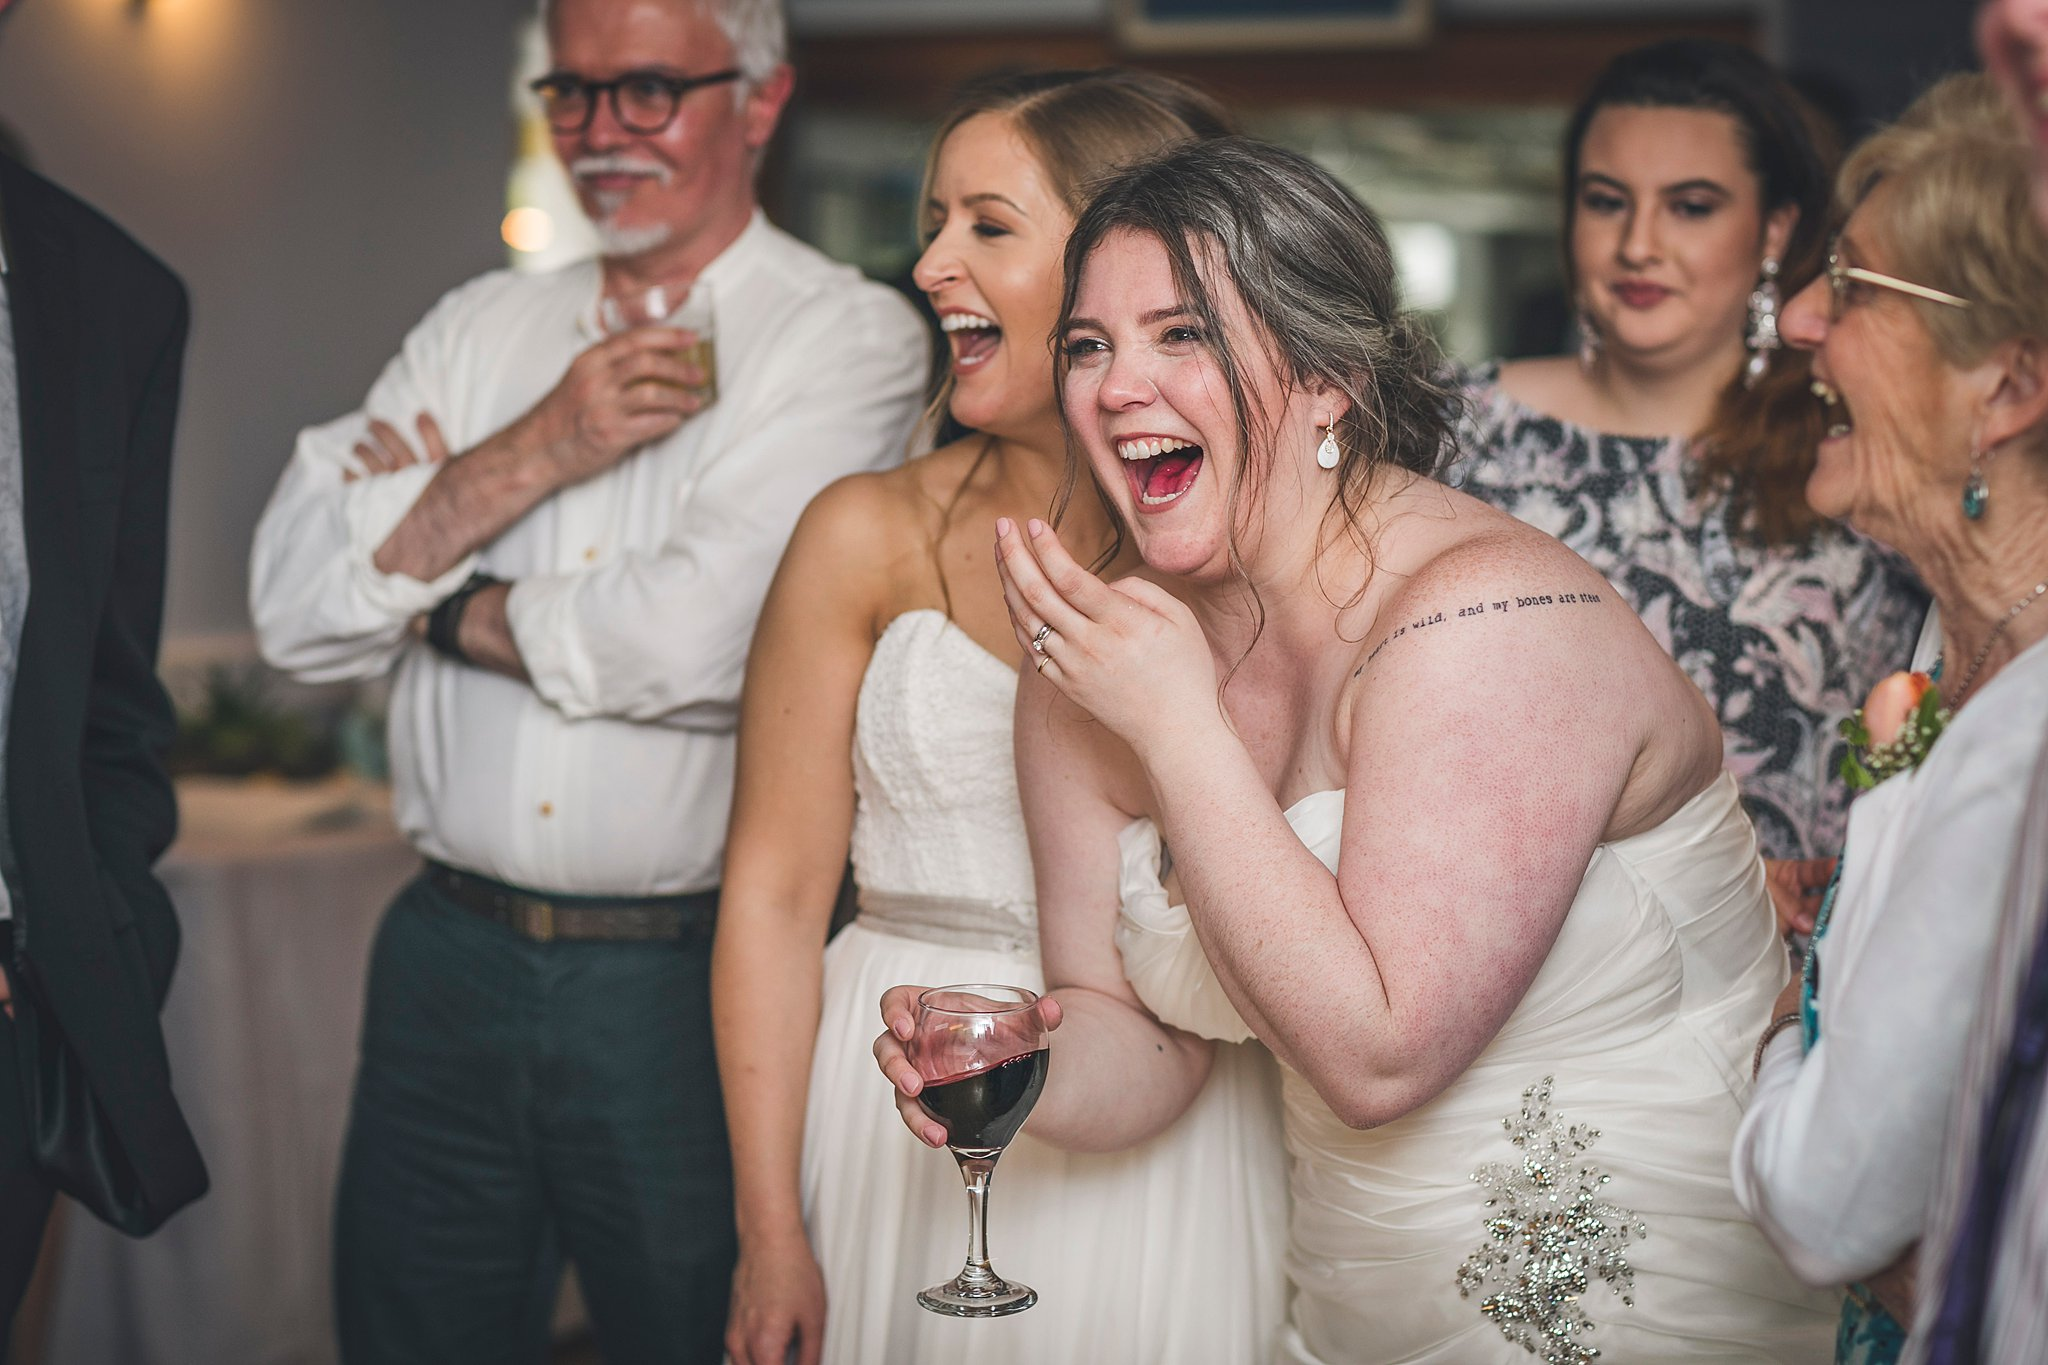 Brides laugh during their wedding reception held at Murray's Pond in Newfoundland